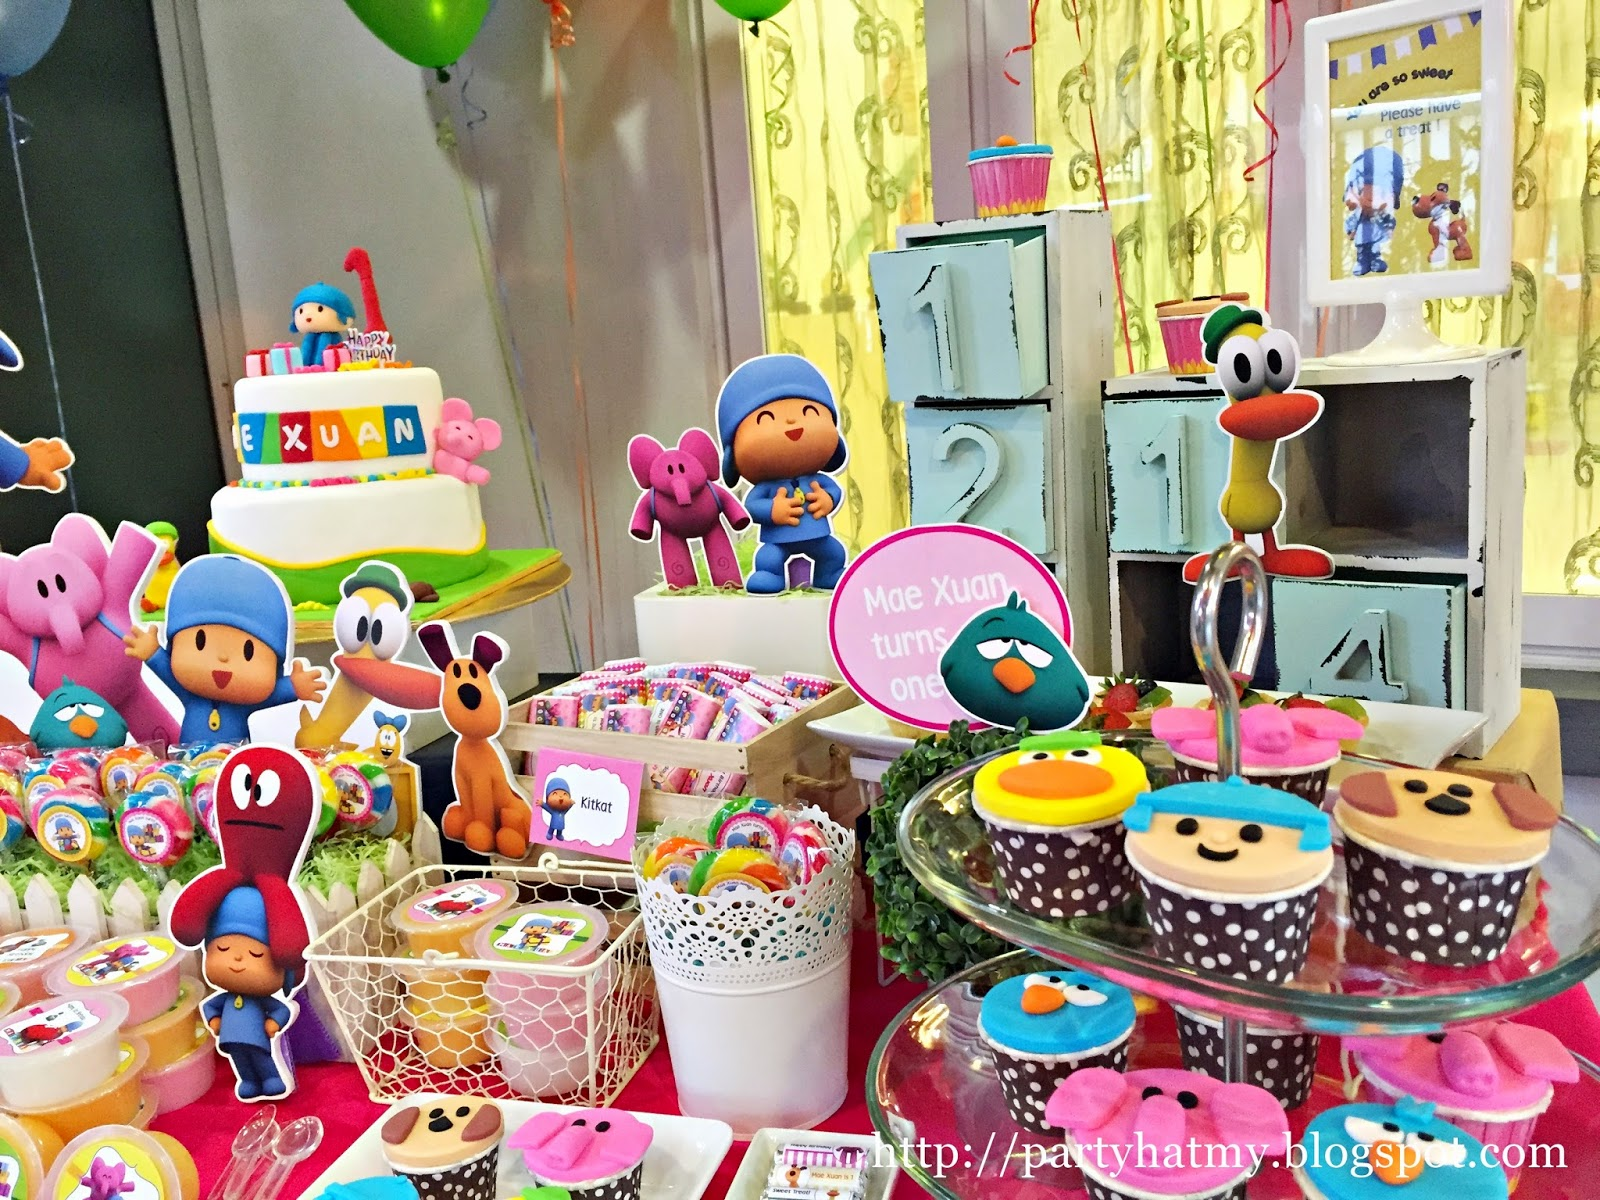 Birthday Decorations: Party Hat: Pocoyo Birthday Party For Mae Xuan